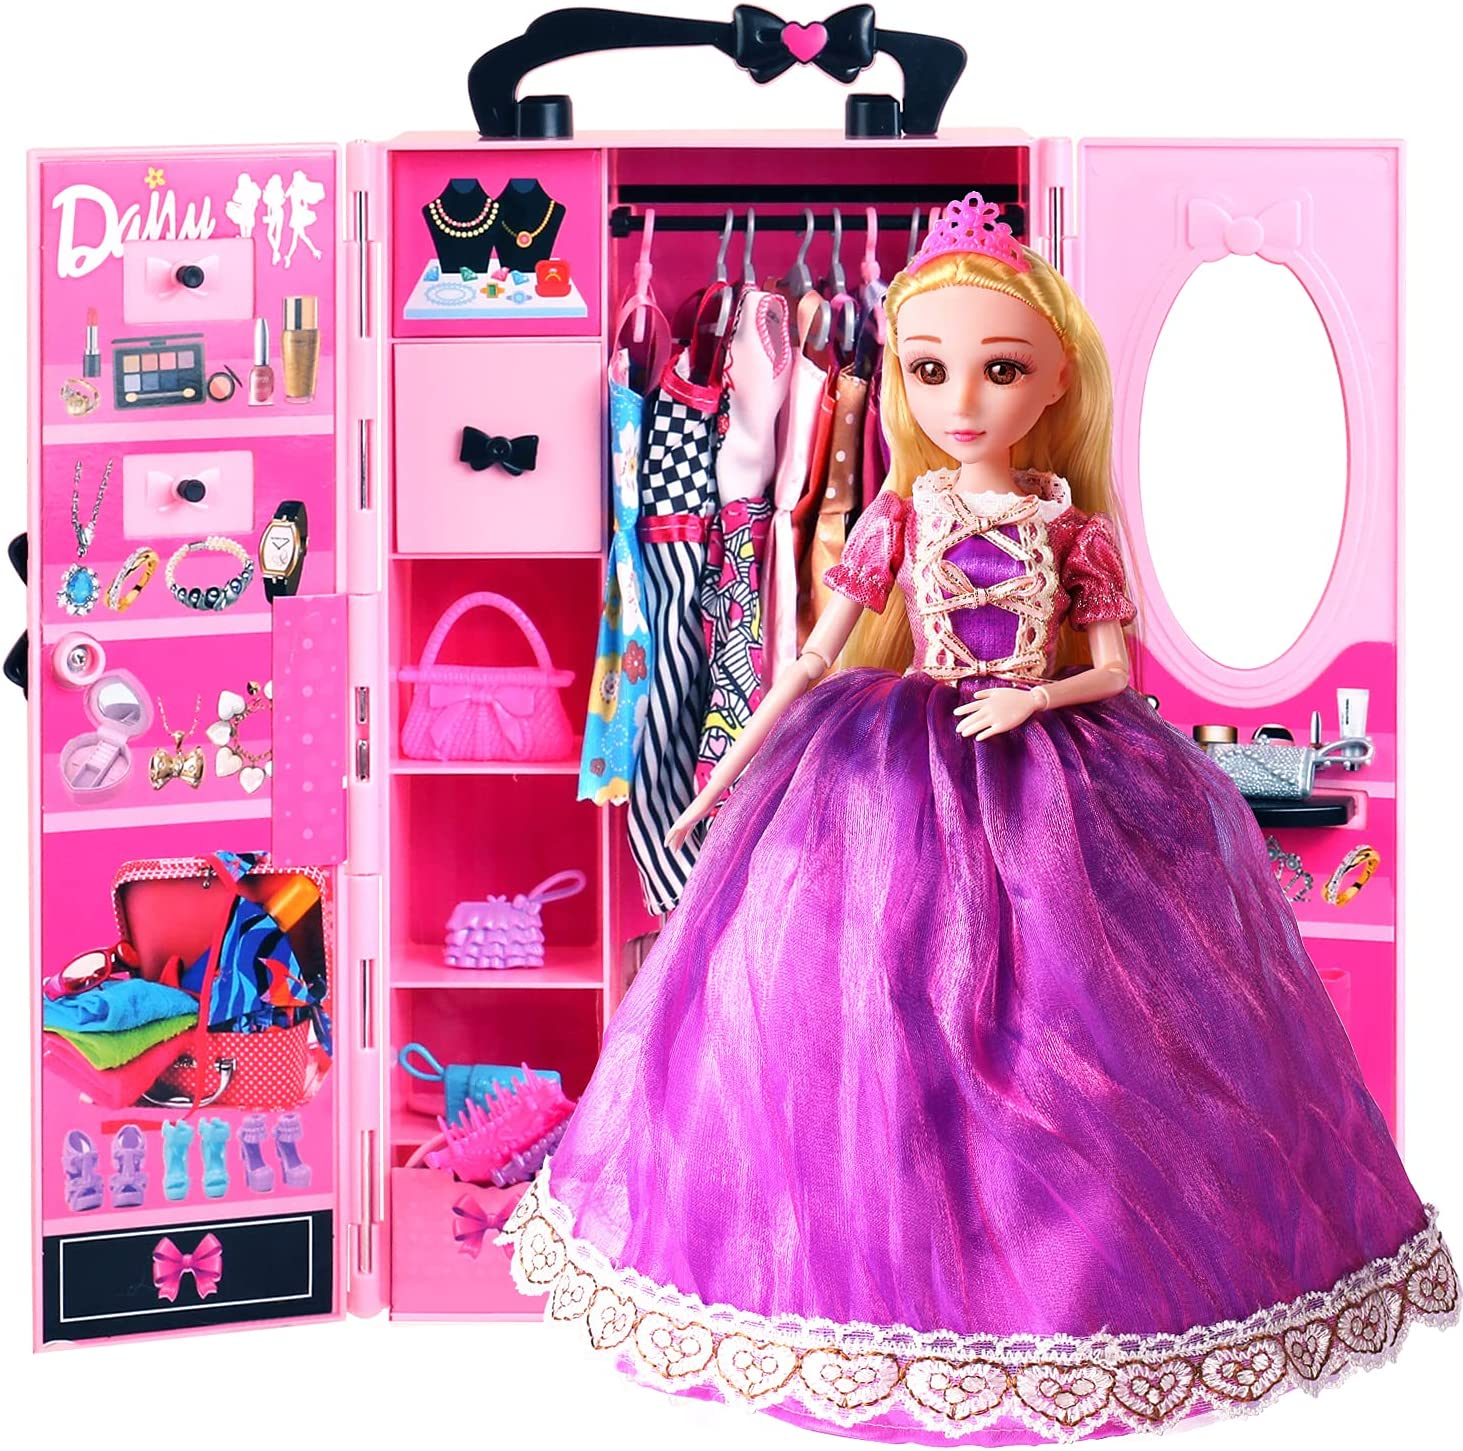 UCanaan 51 Pack Baby Doll Clothes El Paso Mall Accessories PCS 5 Tampa Mall Fashion and